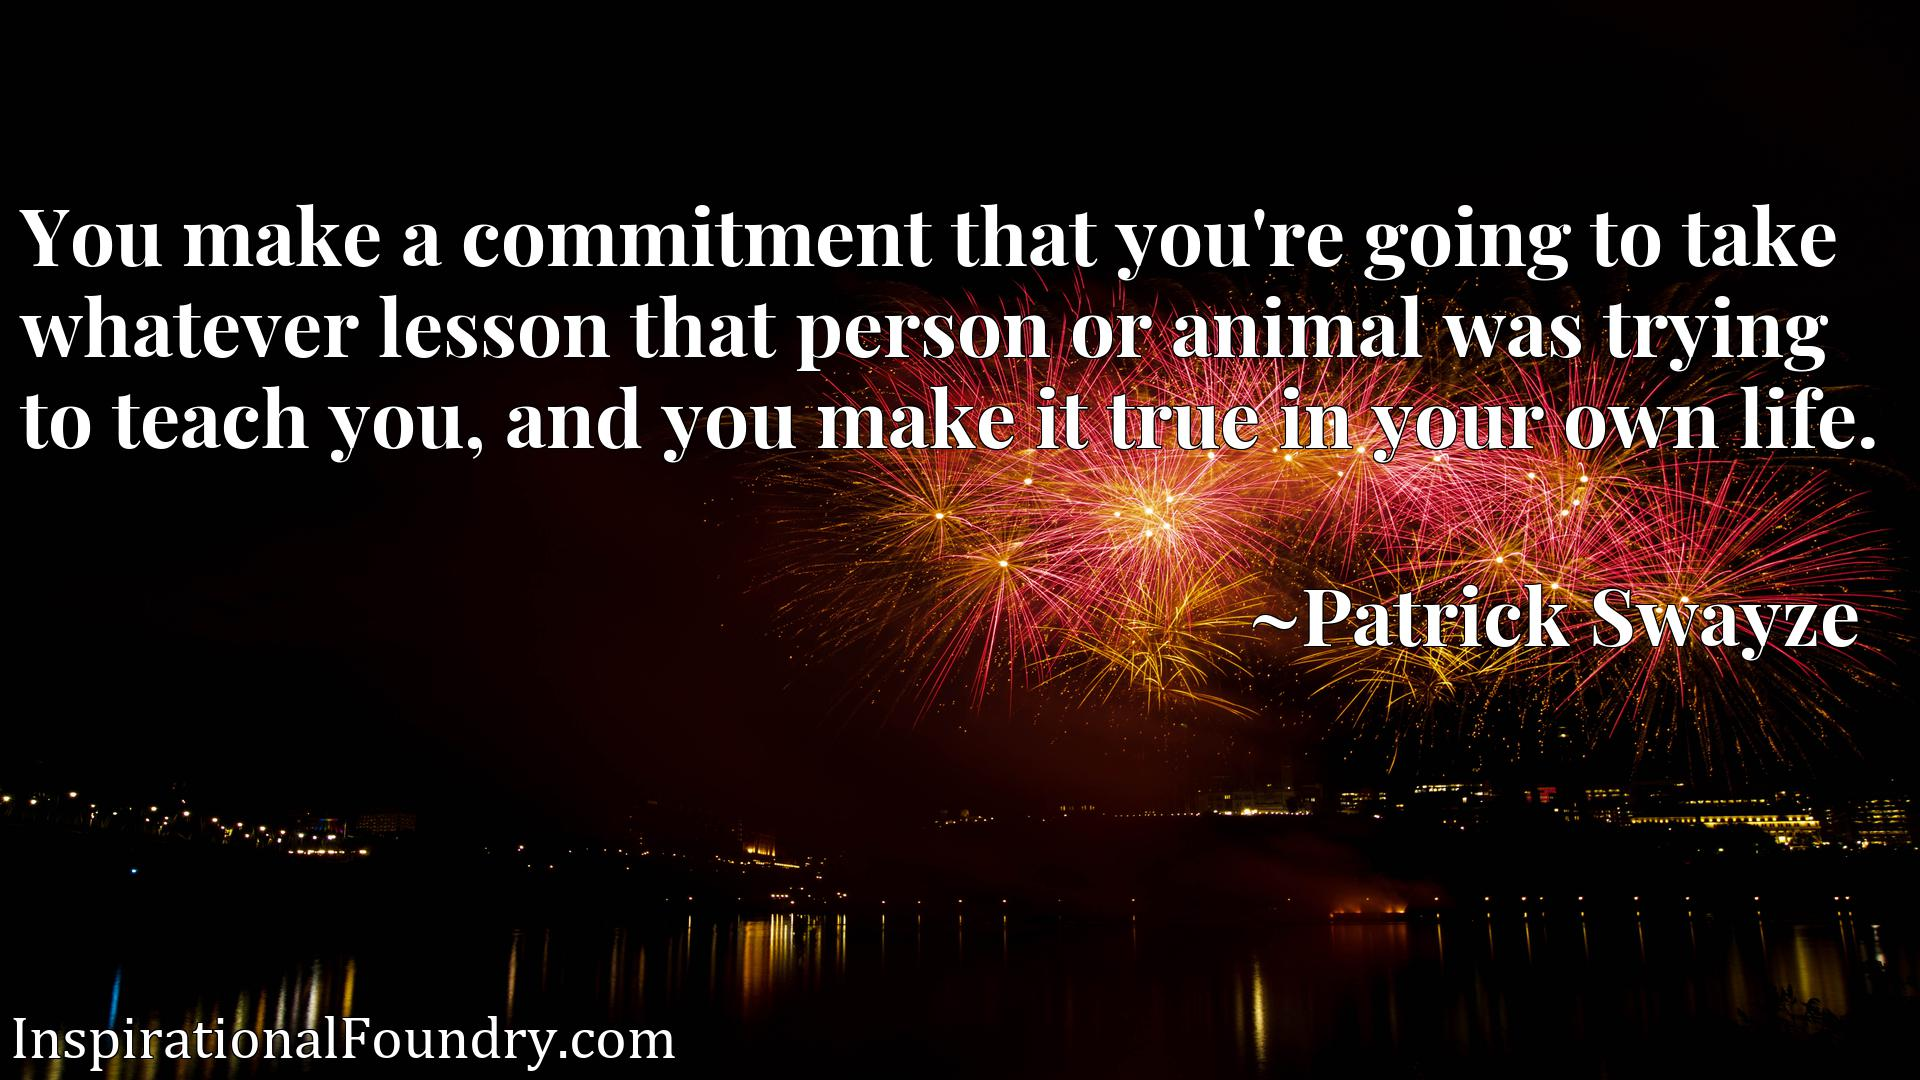 You make a commitment that you're going to take whatever lesson that person or animal was trying to teach you, and you make it true in your own life.